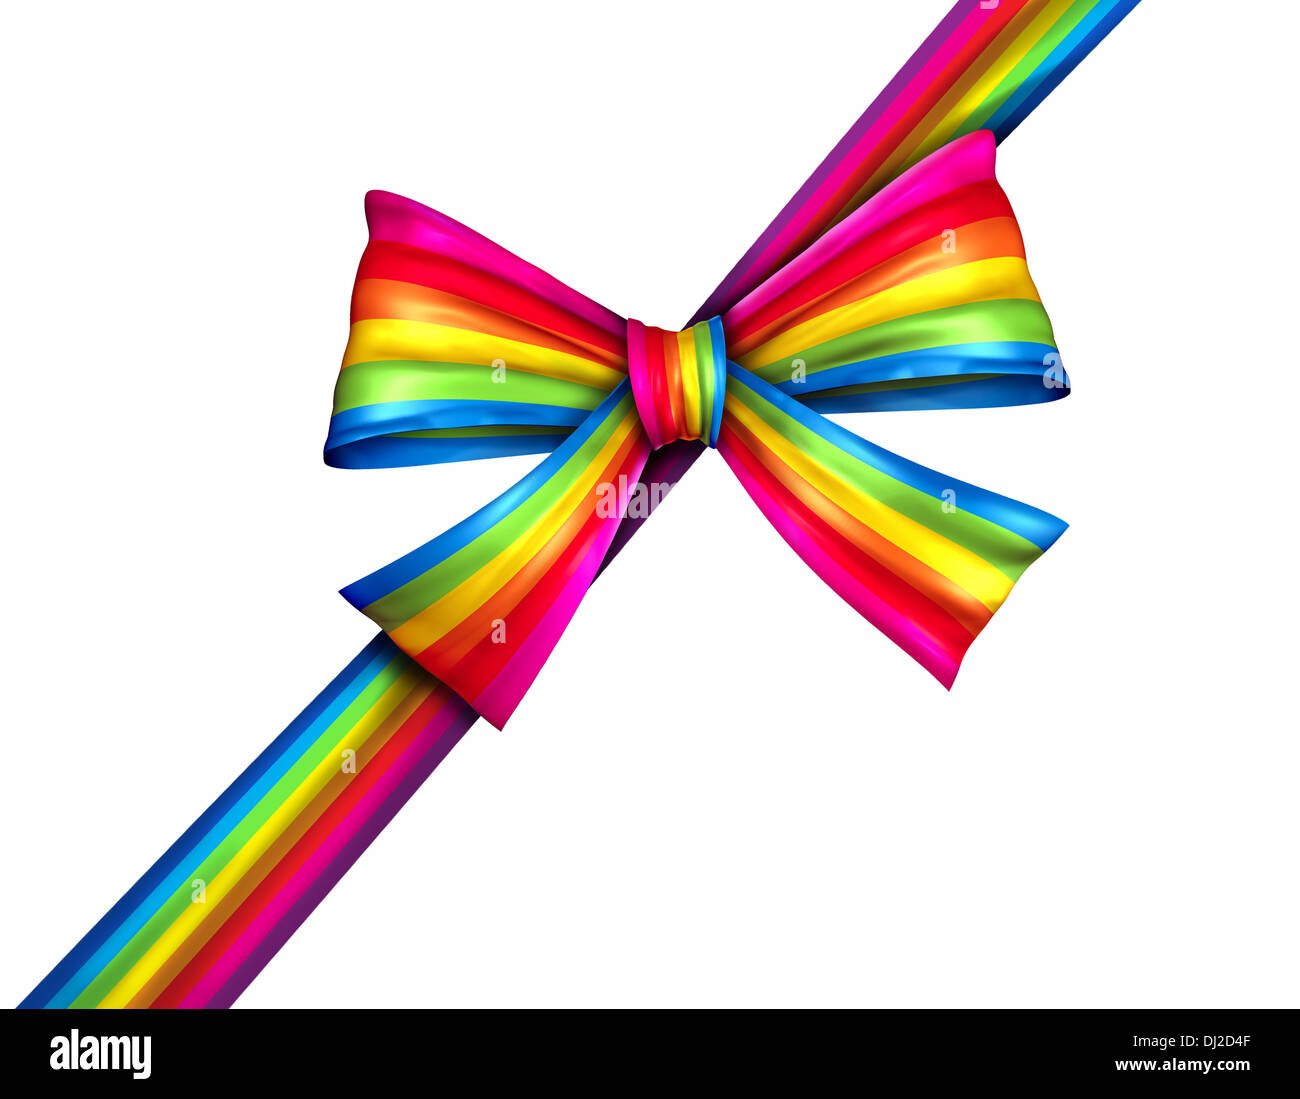 Rainbow diagonal gift ribbon bow as a silk present with wrapping tape of bright spectrum colors for charity donation giving on Christmas or winter holiday new year celebration isolated on a white background. - Stock Image